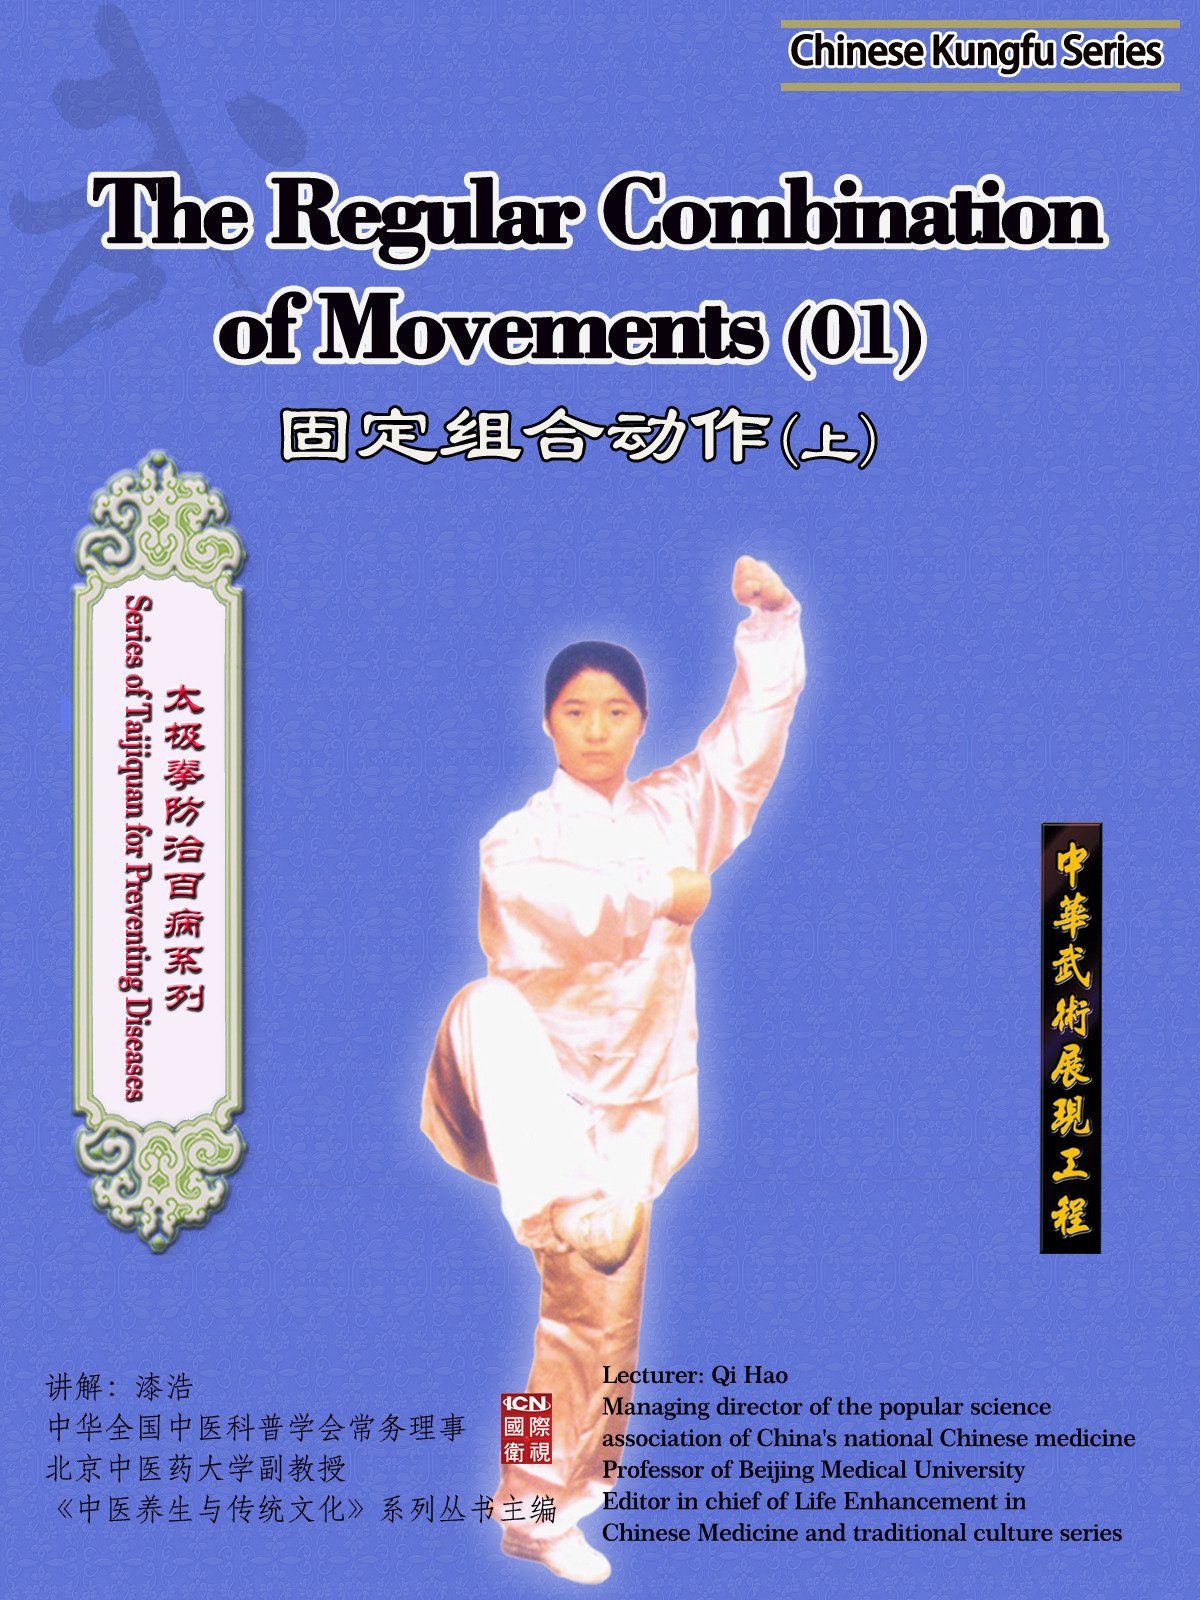 Series of Taijiquan for Preventing Diseases-The Regular Combination of Movements(01)